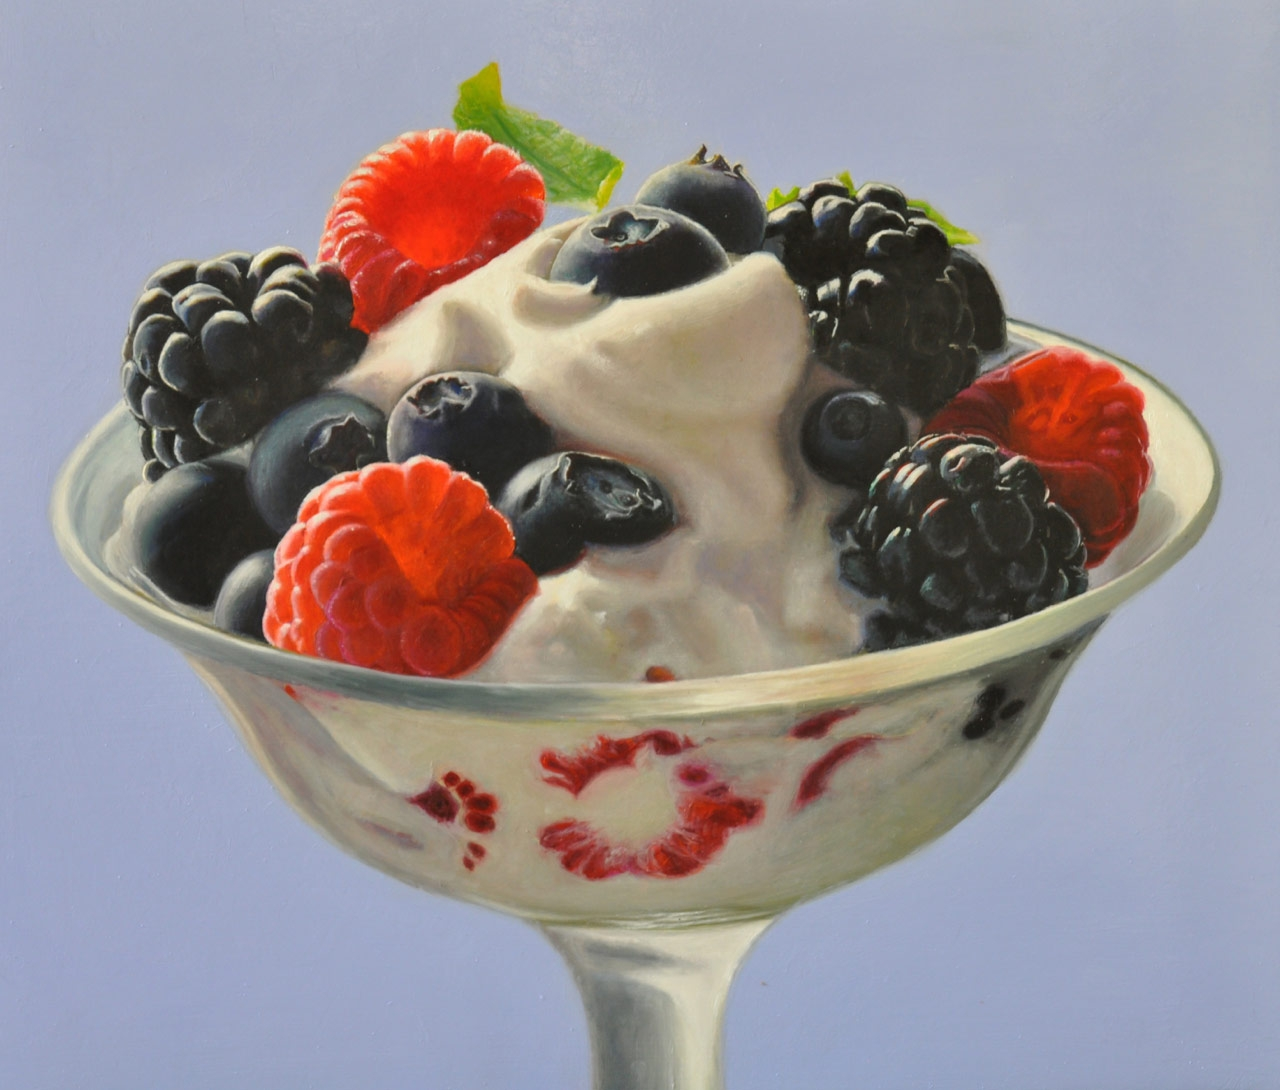 03-Berries-and-Cream-Mary-Ellen-Johnson-A-Sweet-Tooth-s-Dream-in-Food-Art-Paintings-www-designstack-co